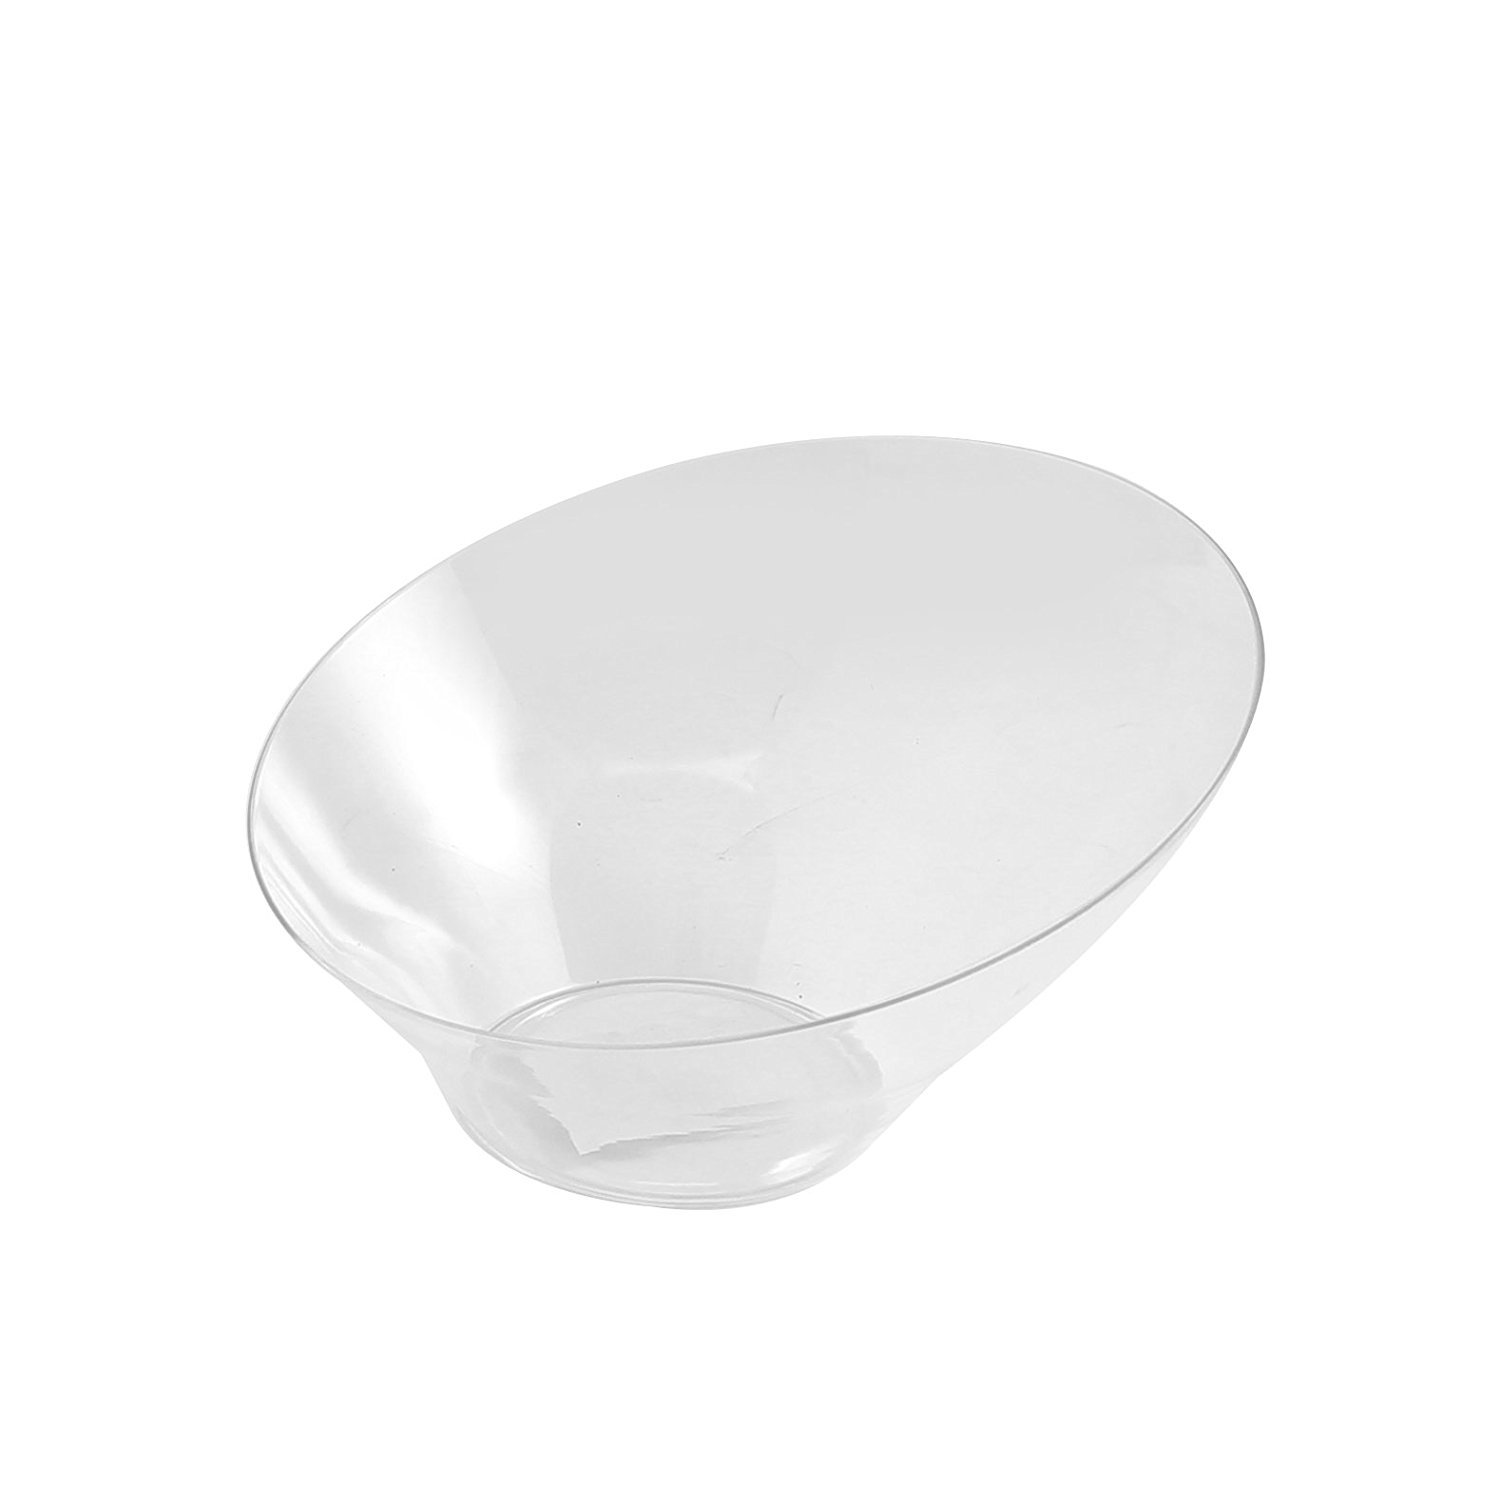 Party Bargains Plastic Bowls | Angled Serving Bowl Clear Medium Perfect For Weddings, Birthdays, Celebrations, Buffets & Catering | Pack of 5